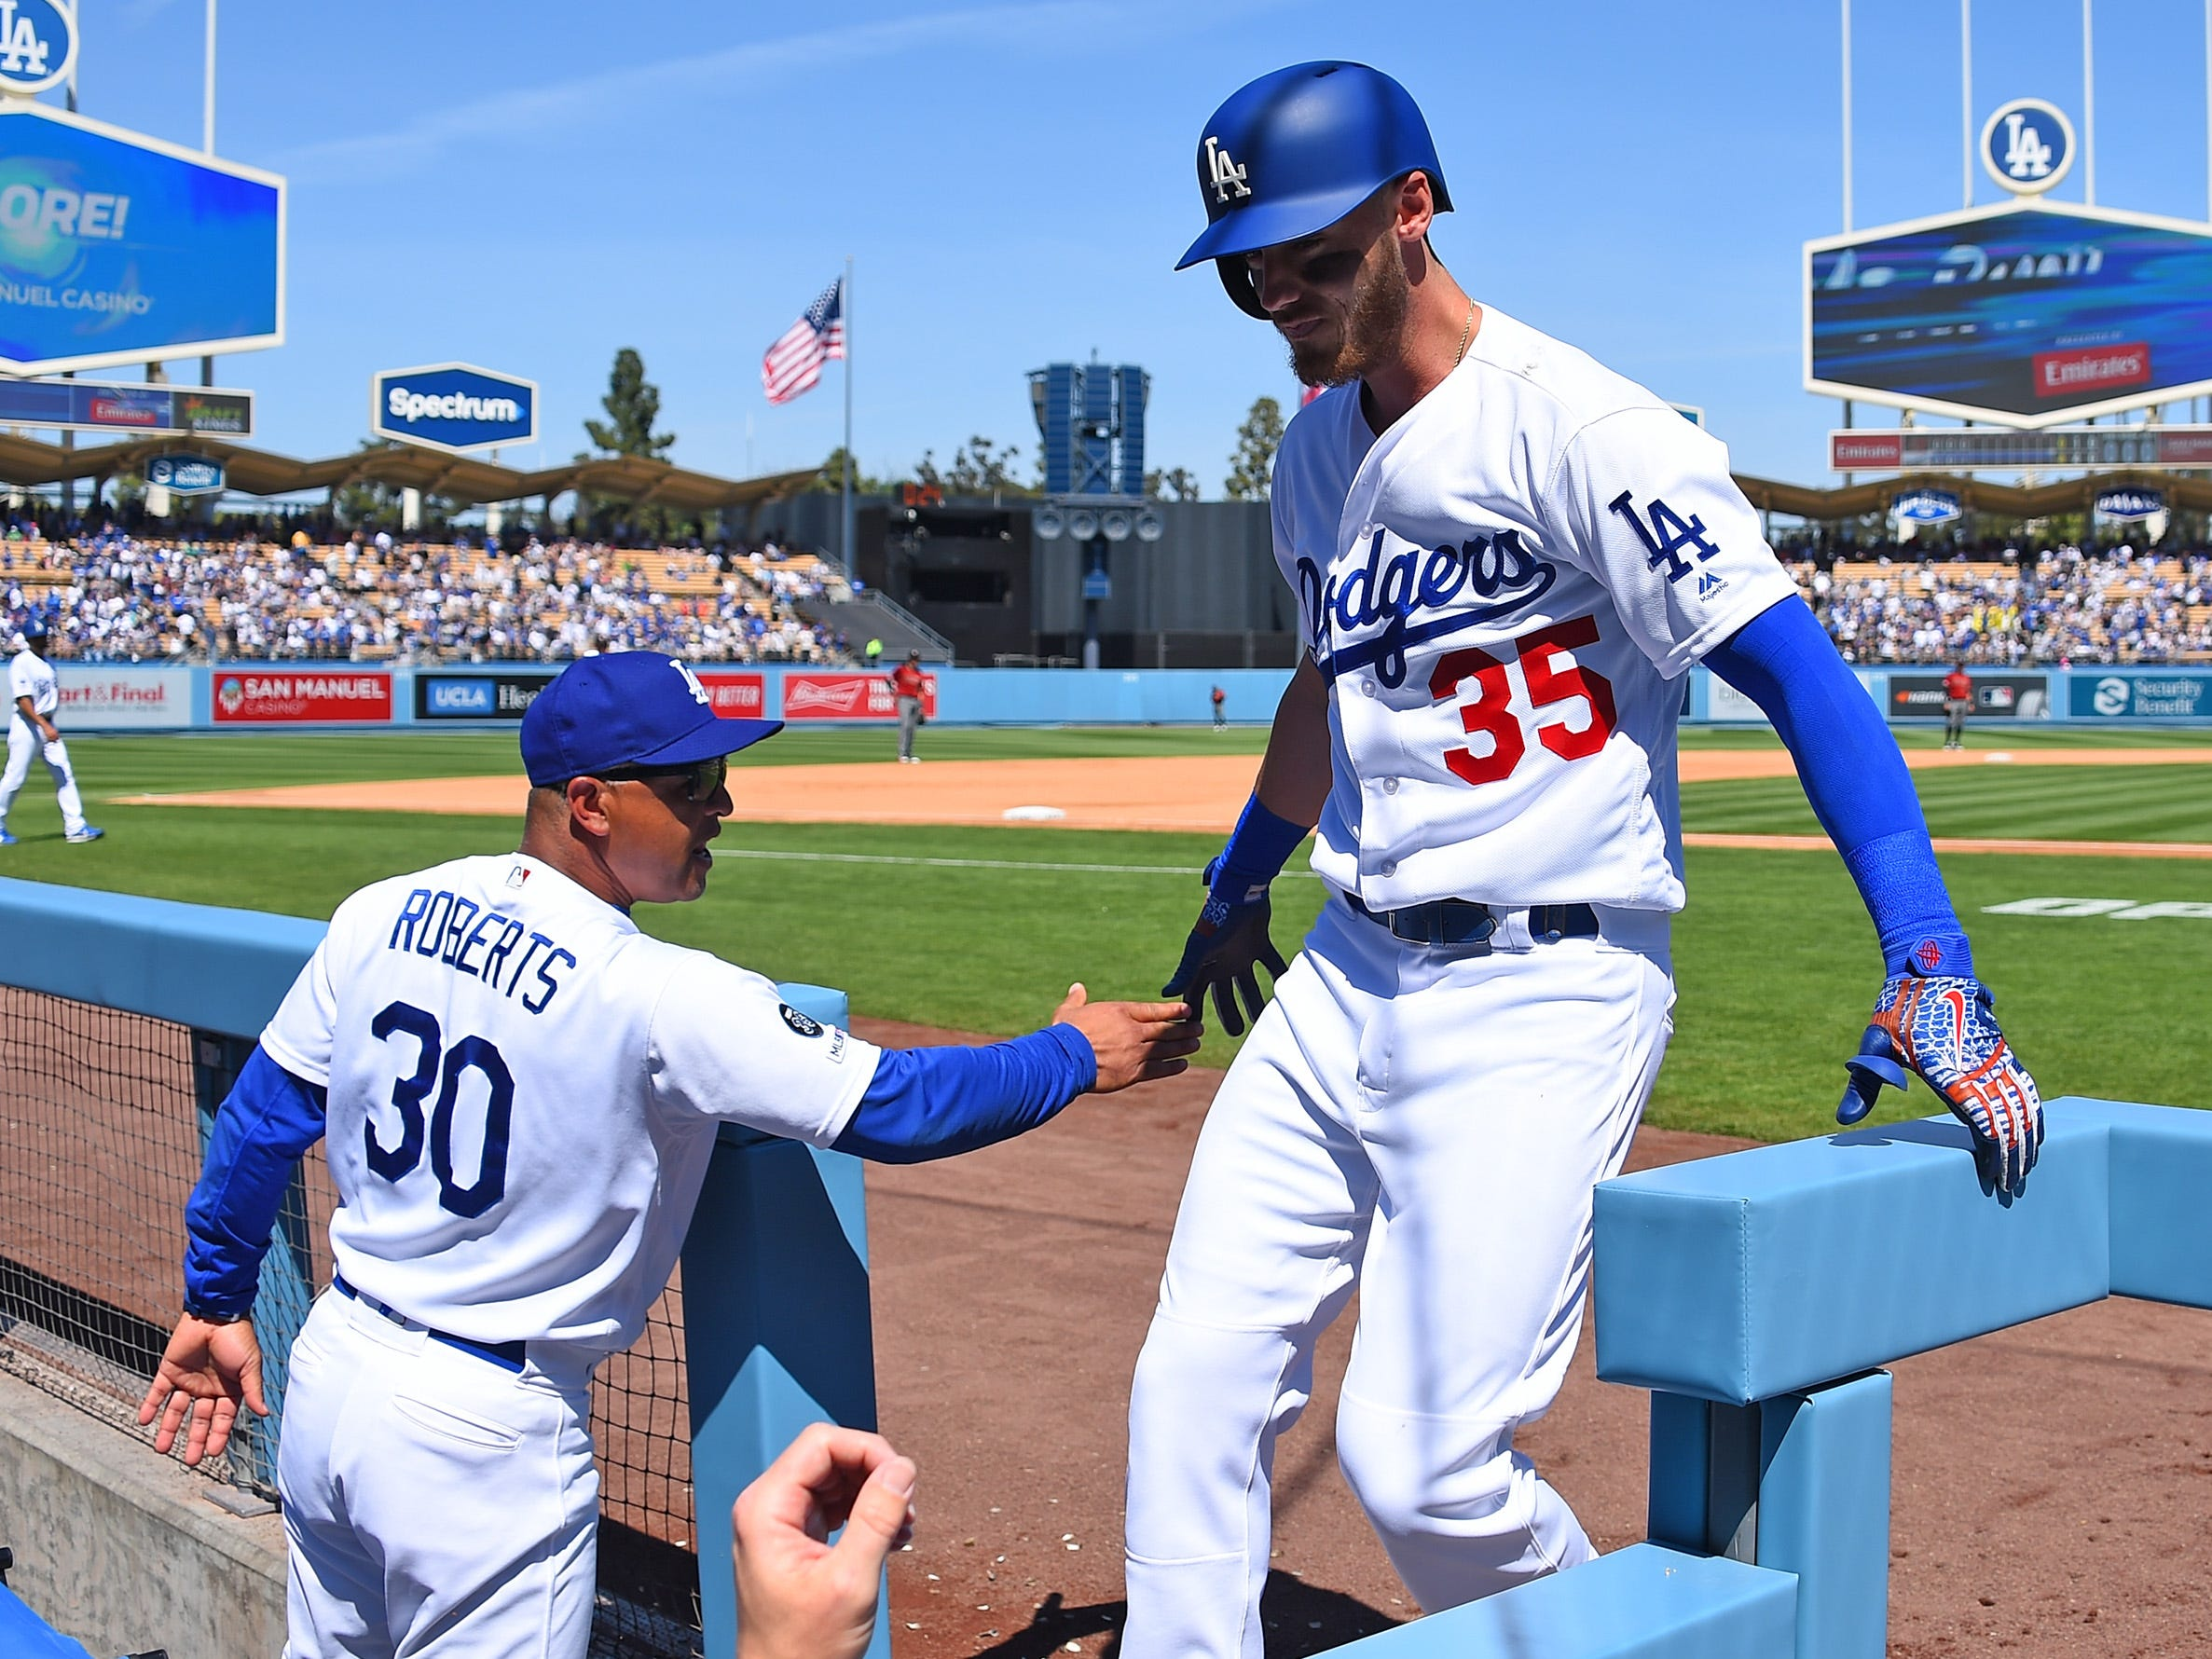 Mar 31, 2019; Los Angeles, CA, USA; Los Angeles Dodgers center fielder Cody Bellinger (35) is greeted in the dugout by manager Dave Roberts (30) after hitting a solo home run in the third inning against the Arizona Diamondbacks at Dodger Stadium.